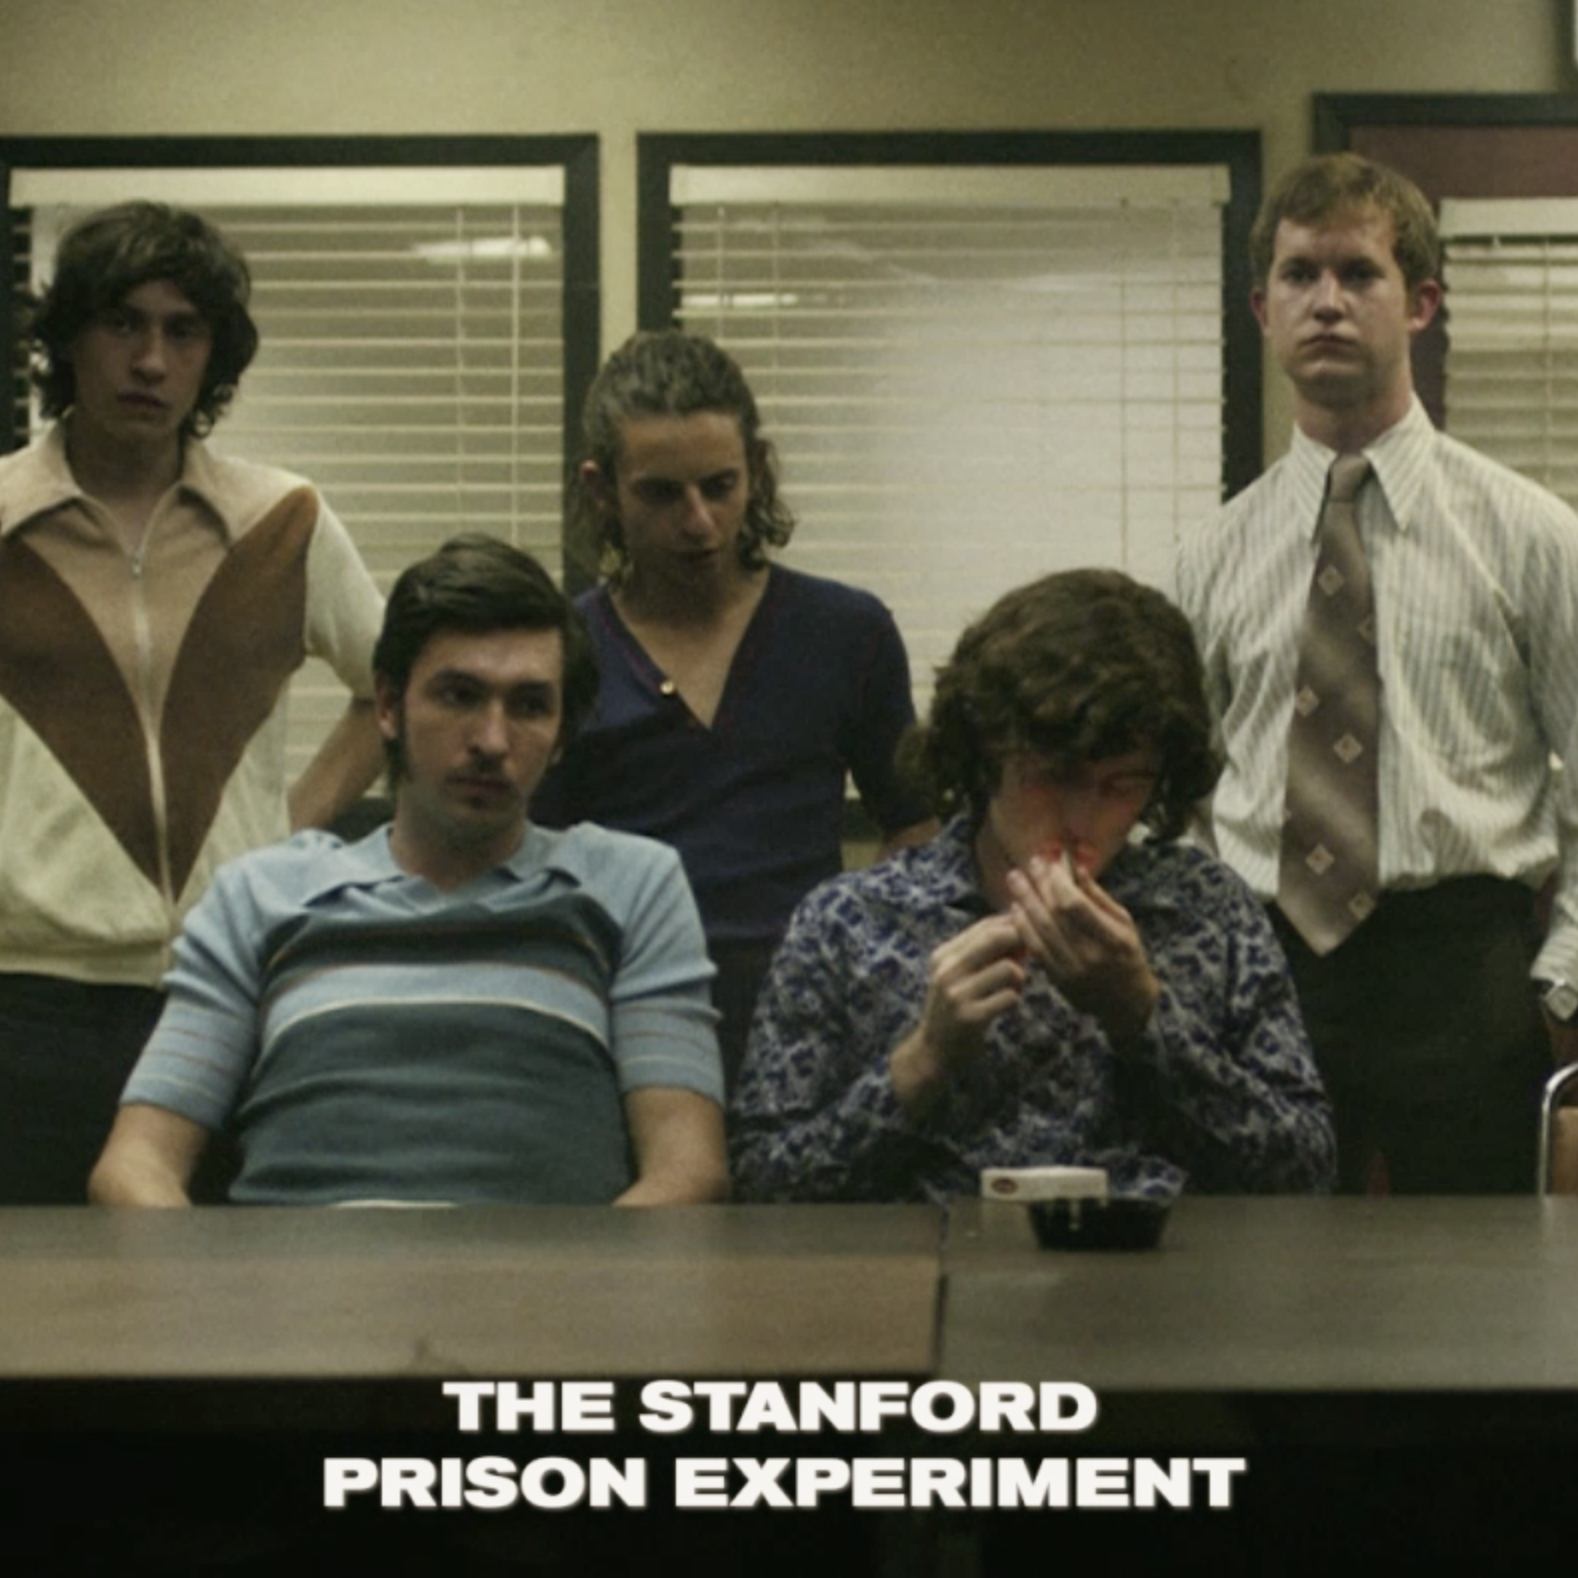 Social Media Case Study: The Stanford Prison Experiment